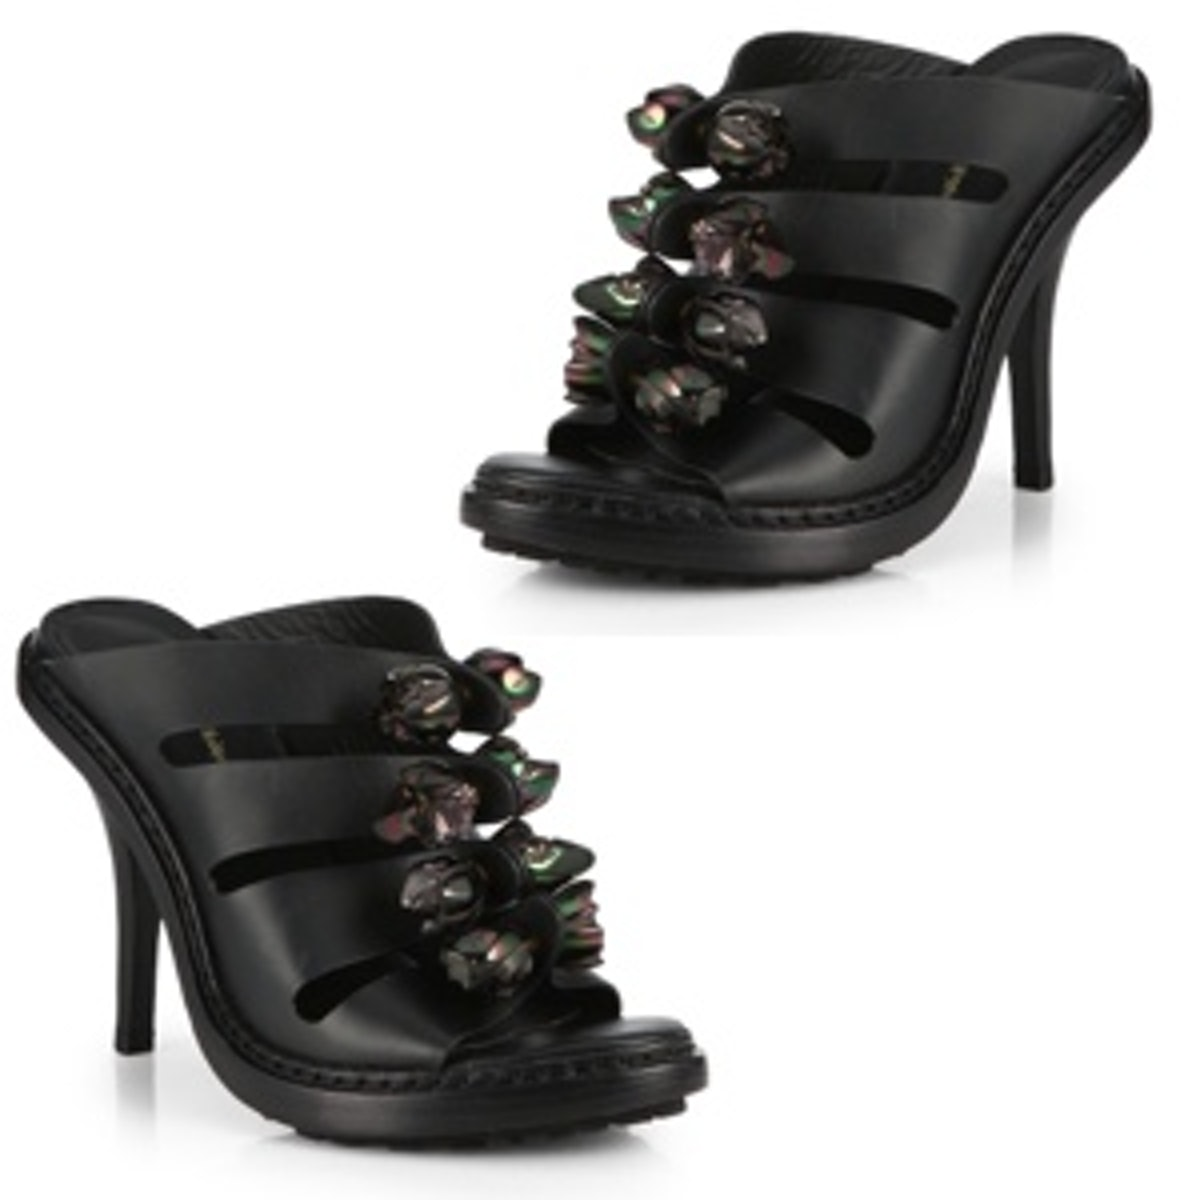 Cosmic Leather Sandals